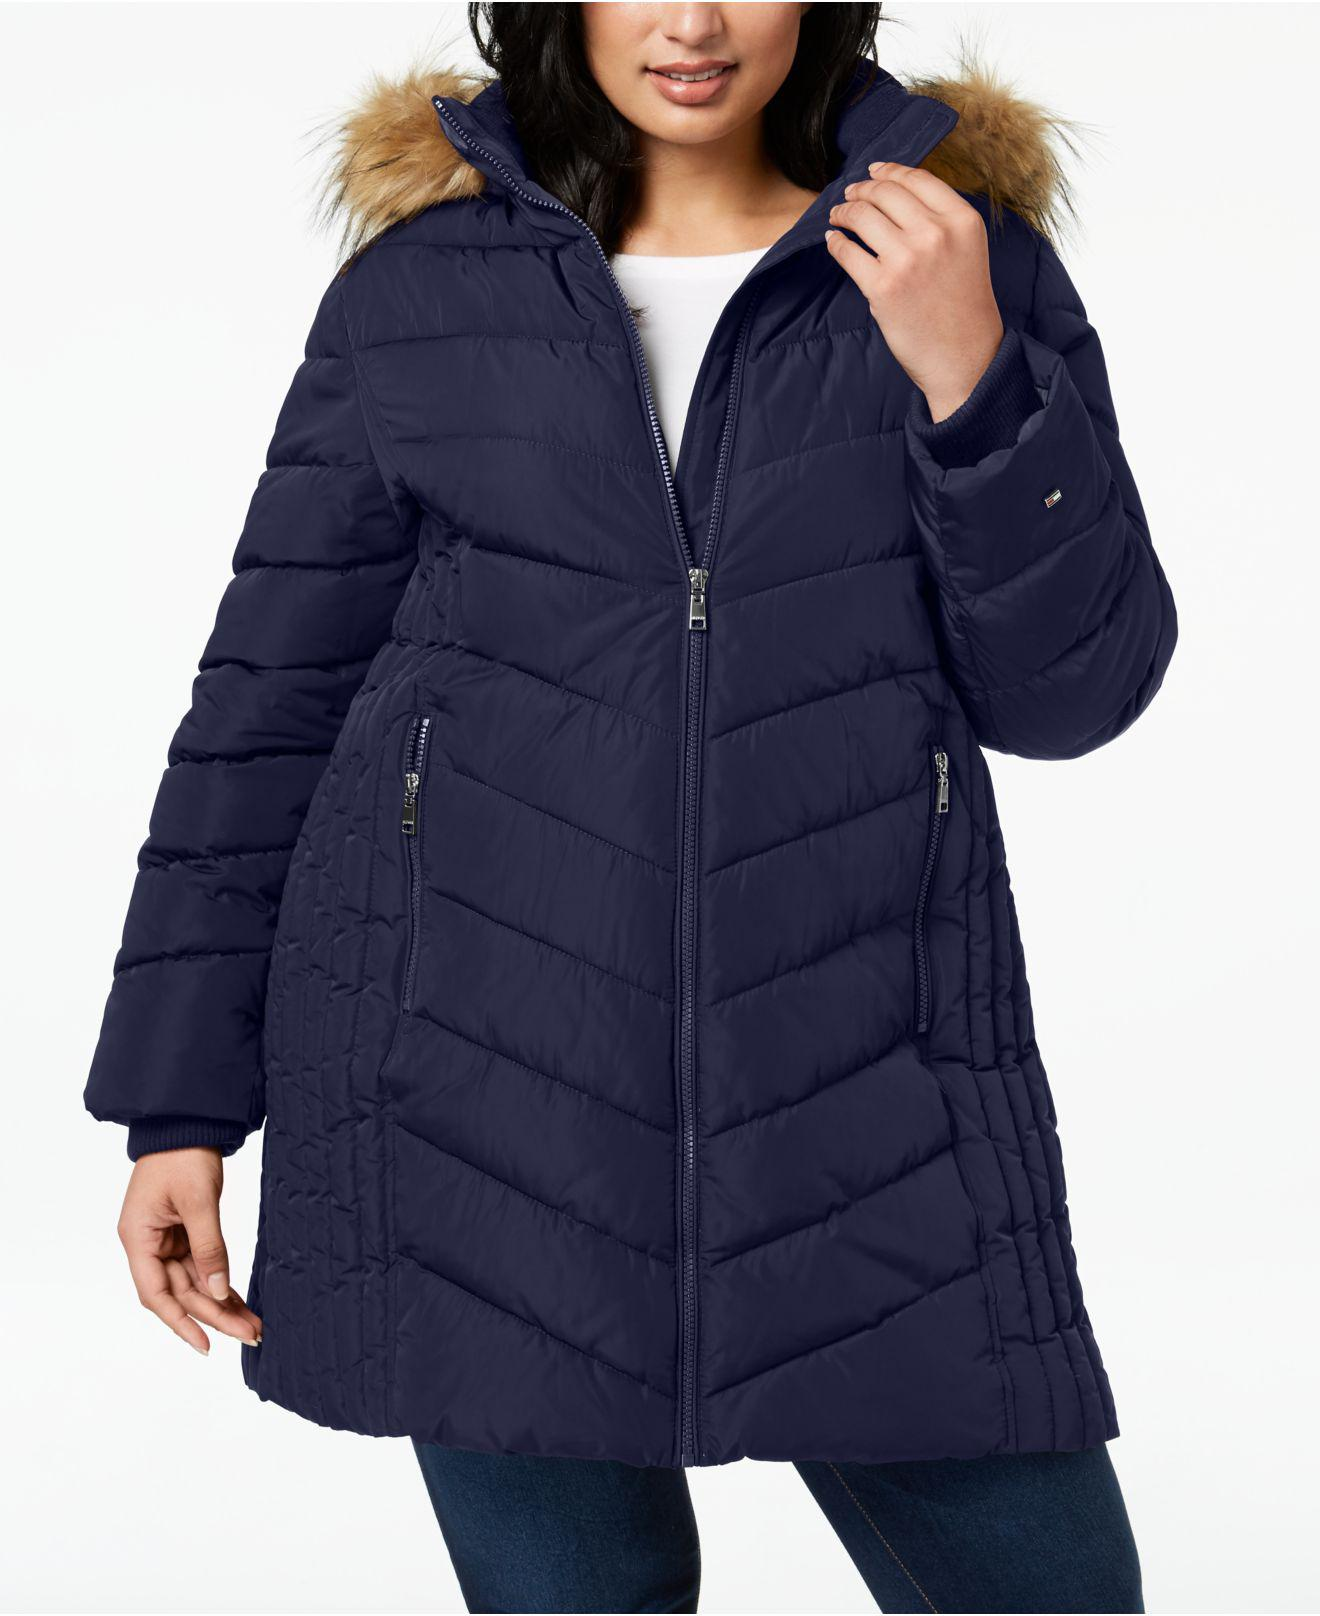 743d741a701fb Lyst - Tommy Hilfiger Plus Size Faux-fur-trim Hooded Puffer Coat in ...